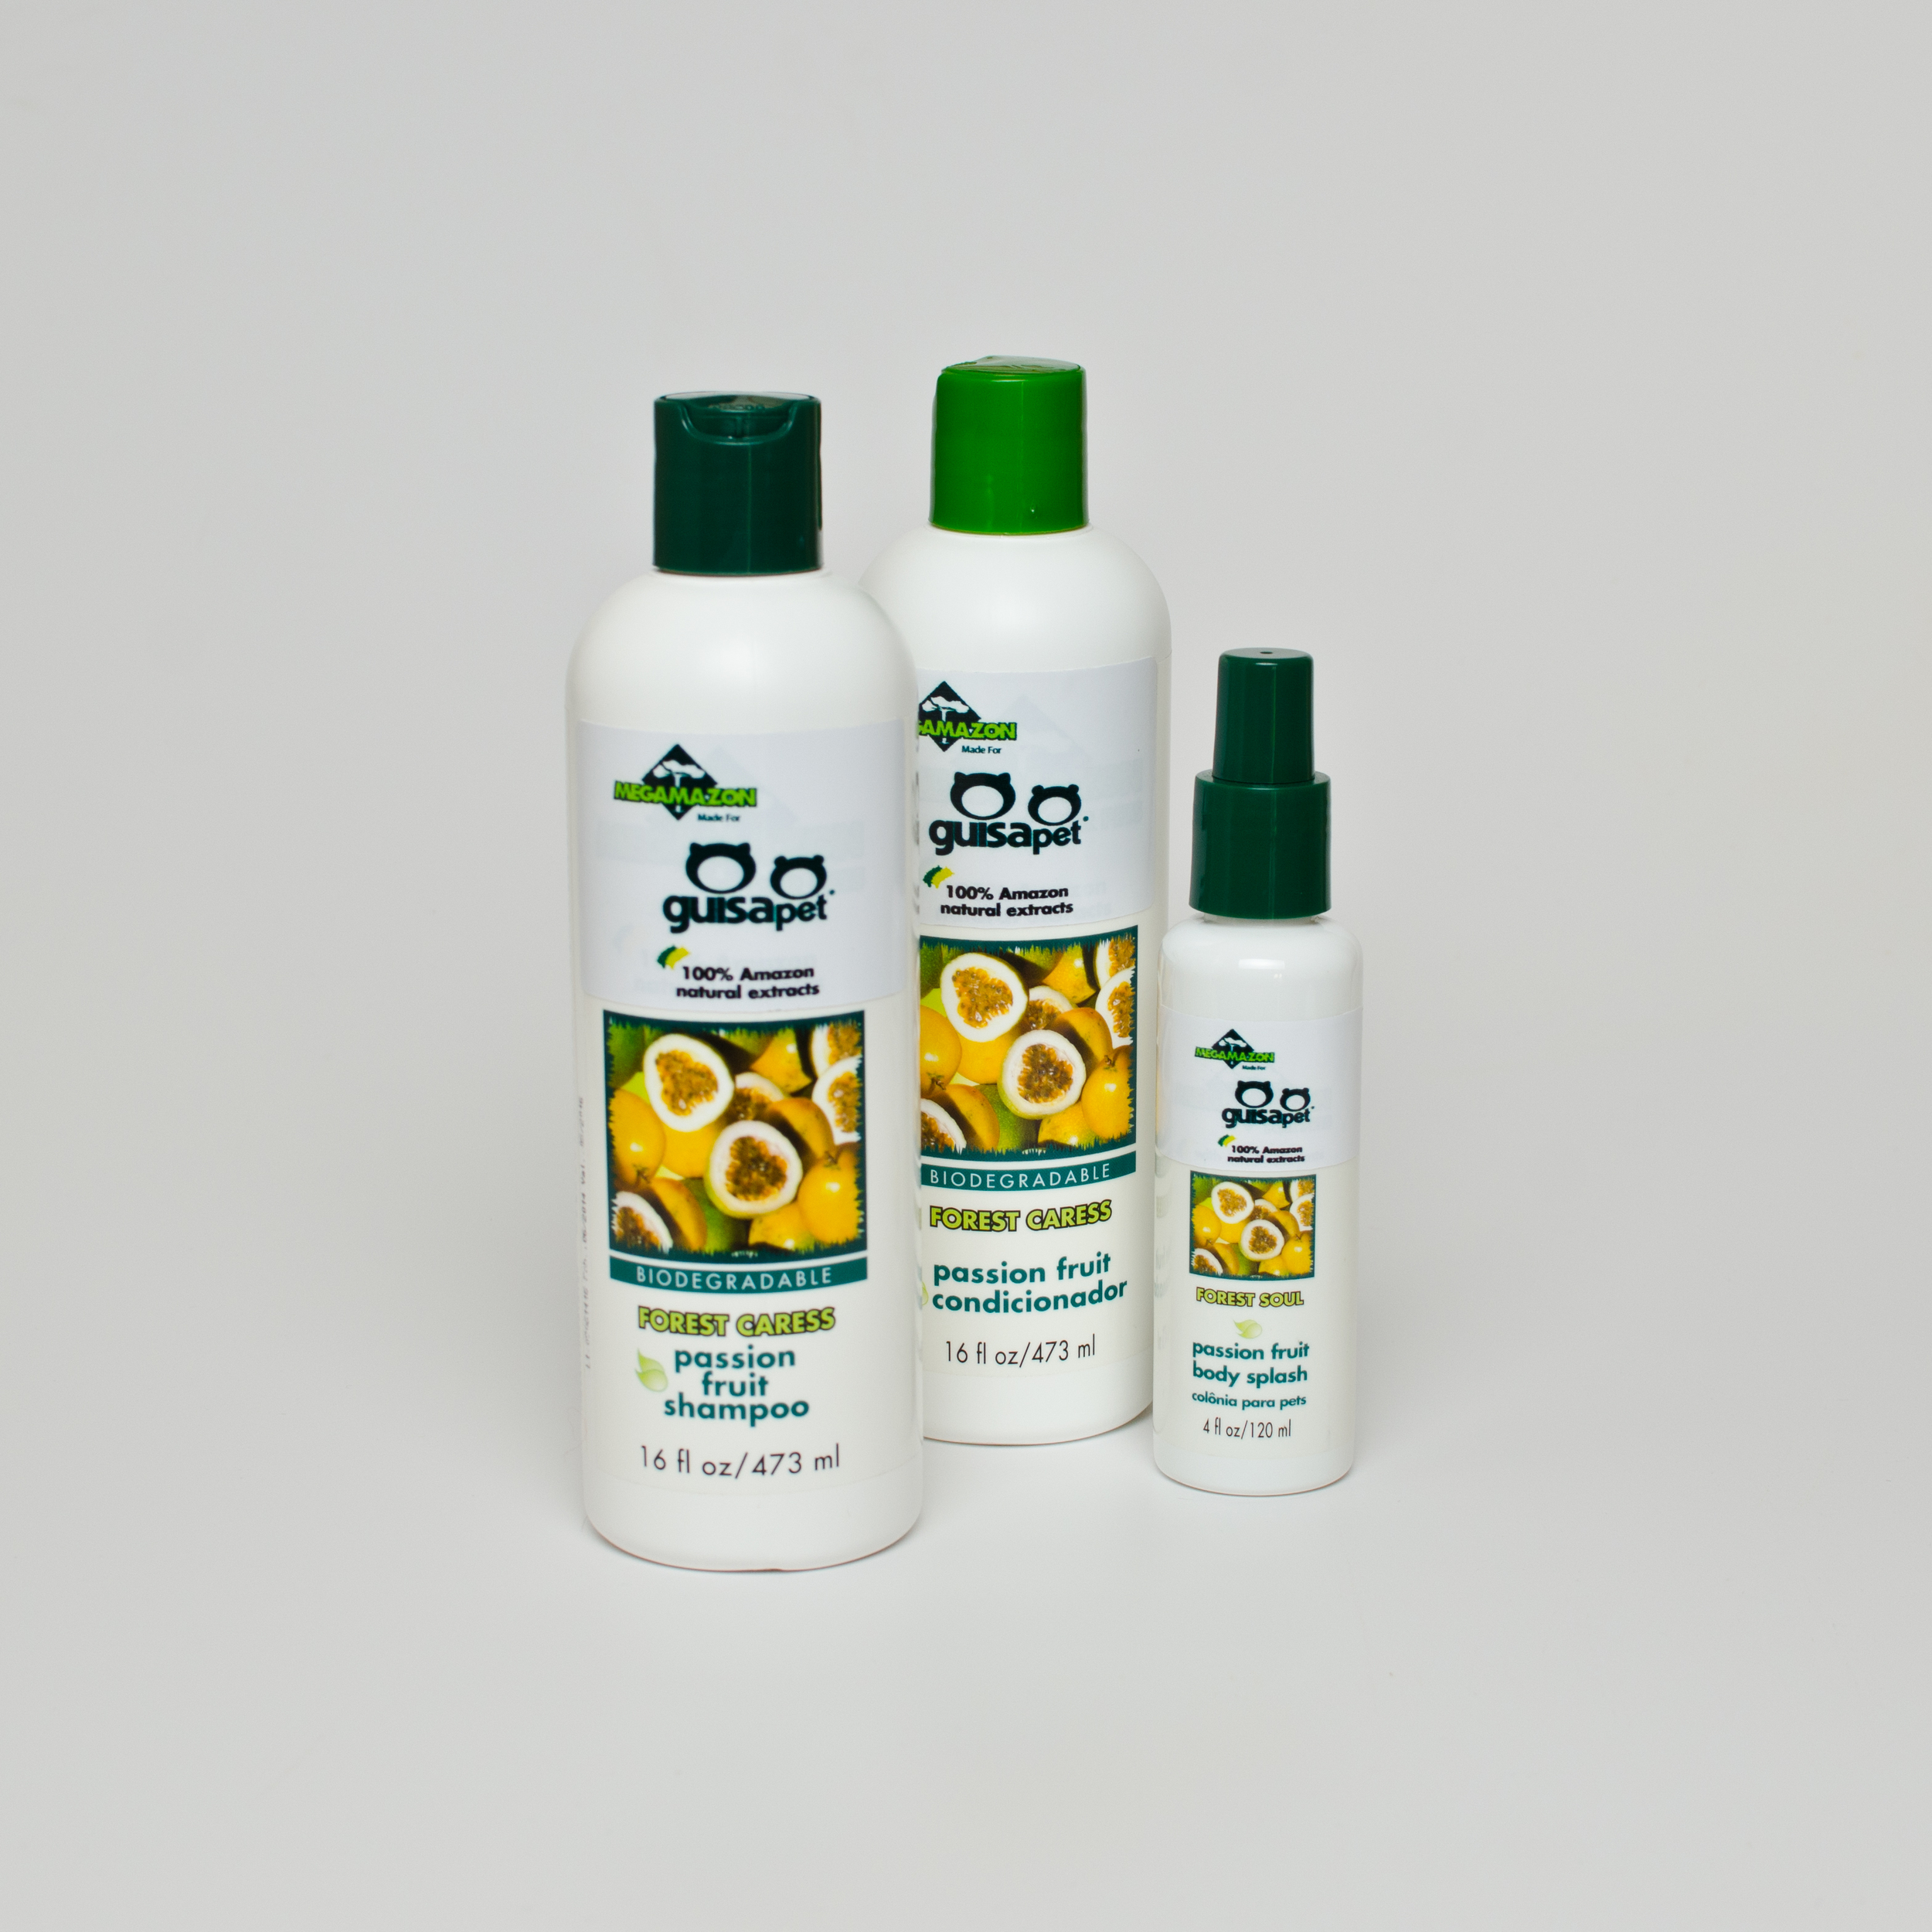 Passion Fruit Kit Guisapet Megamazon.jpg